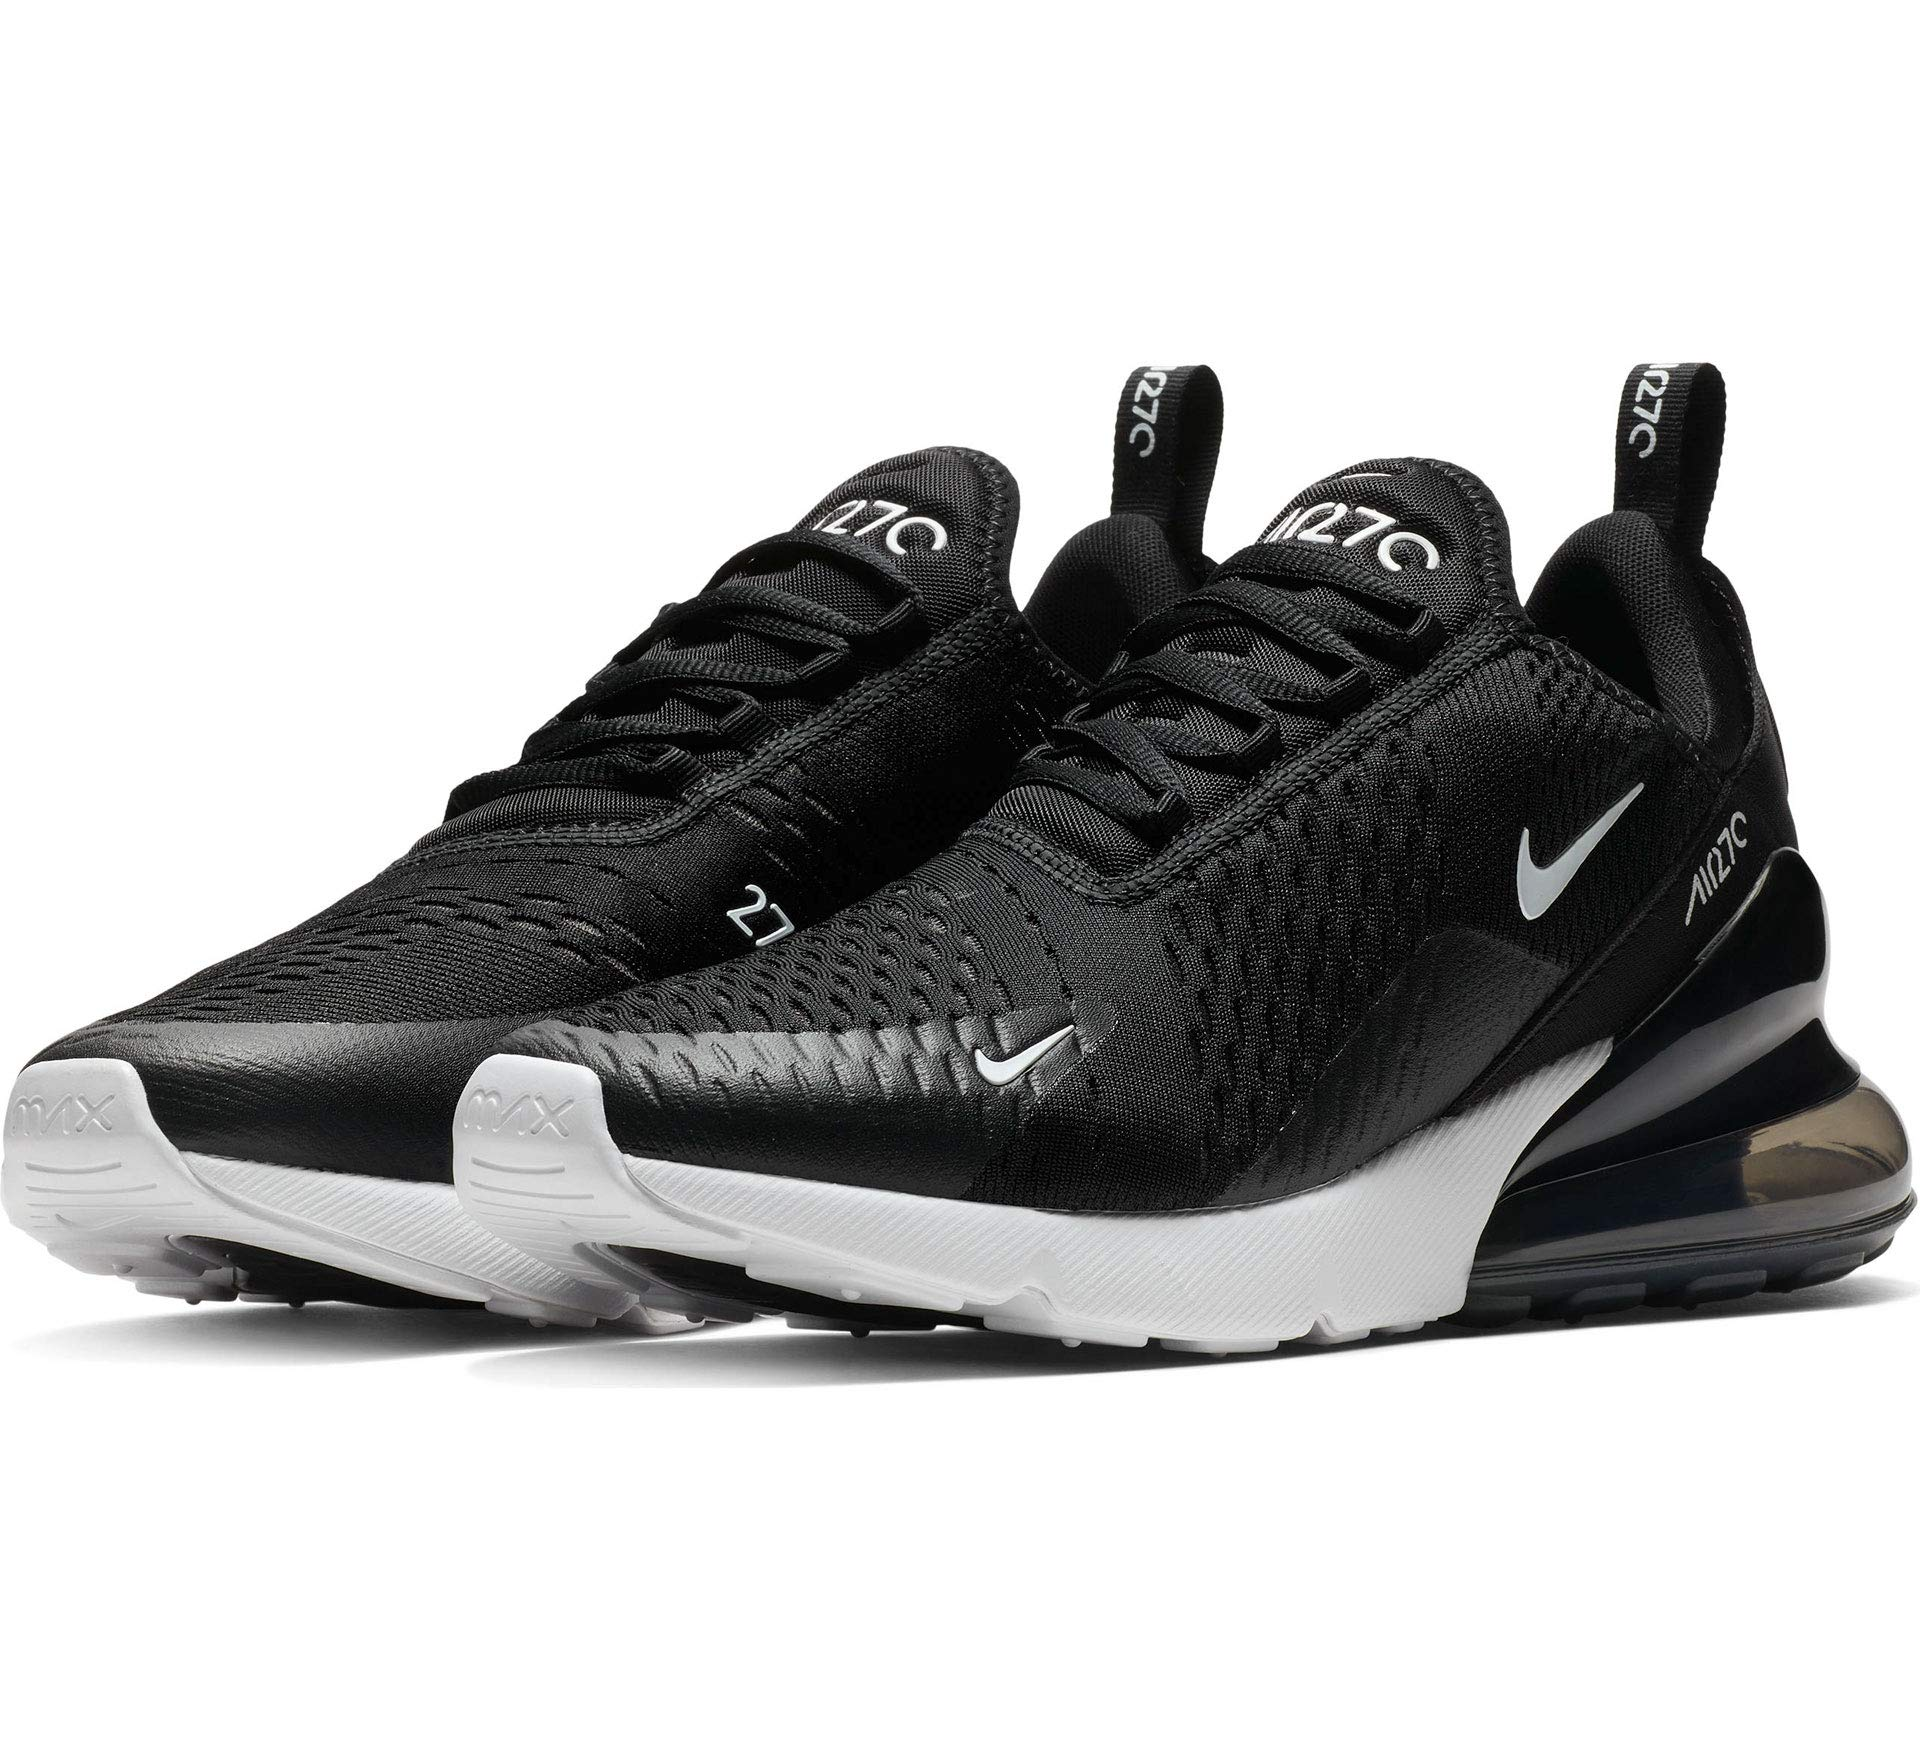 check out 303c8 c2f19 Nike Women's W Air Max 270 Competition Running Shoes